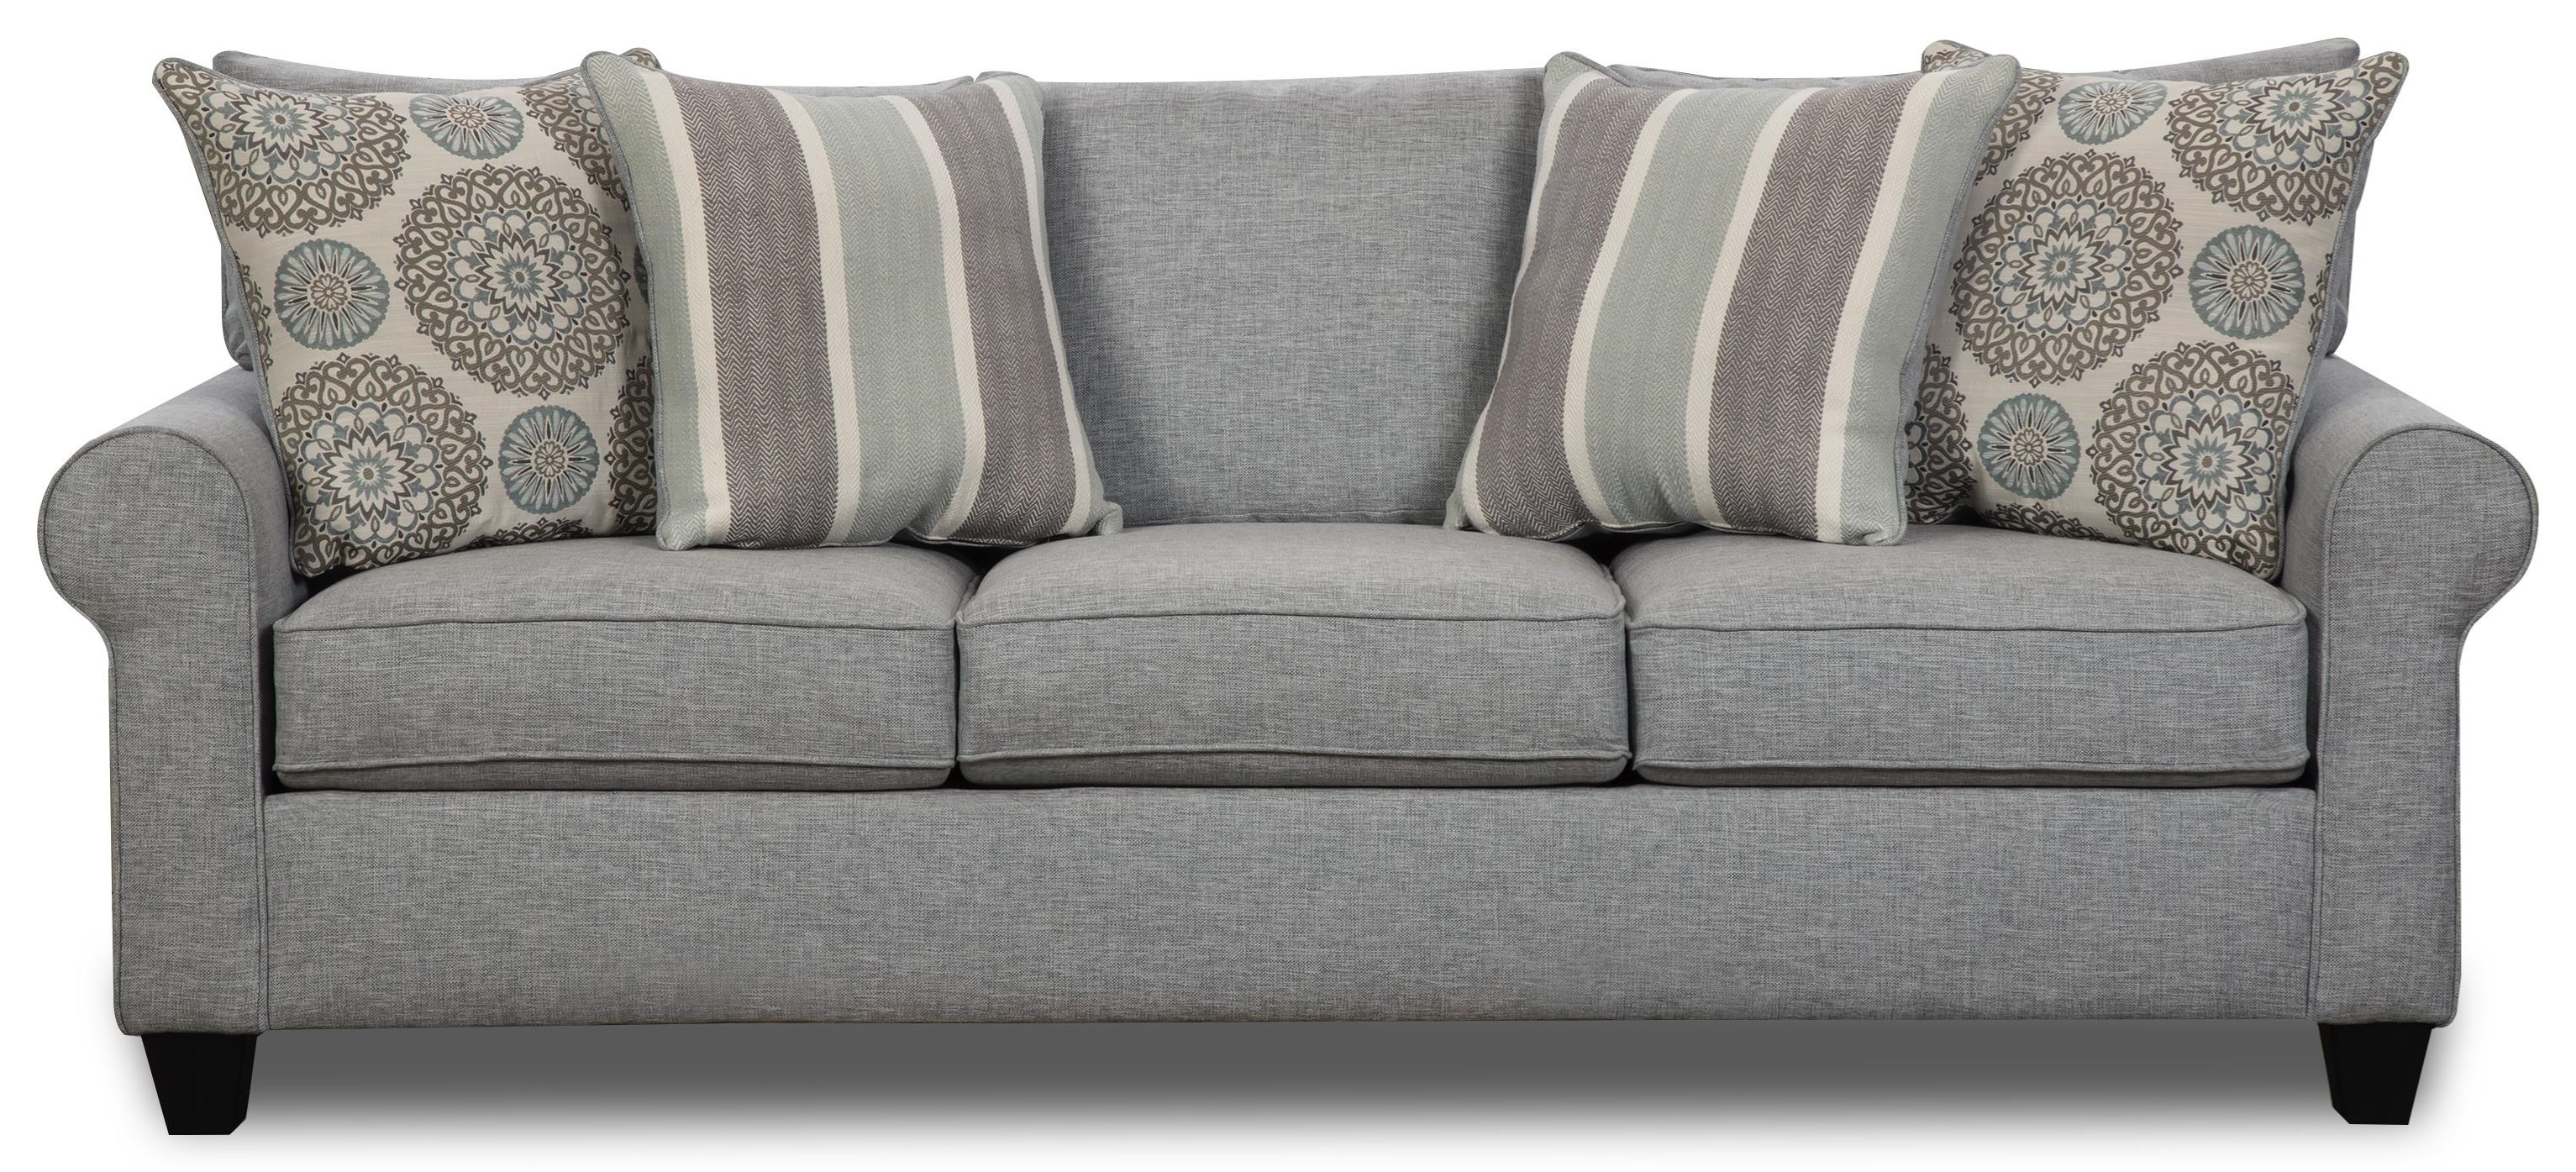 Vivian Sofa by Behold Home at Darvin Furniture